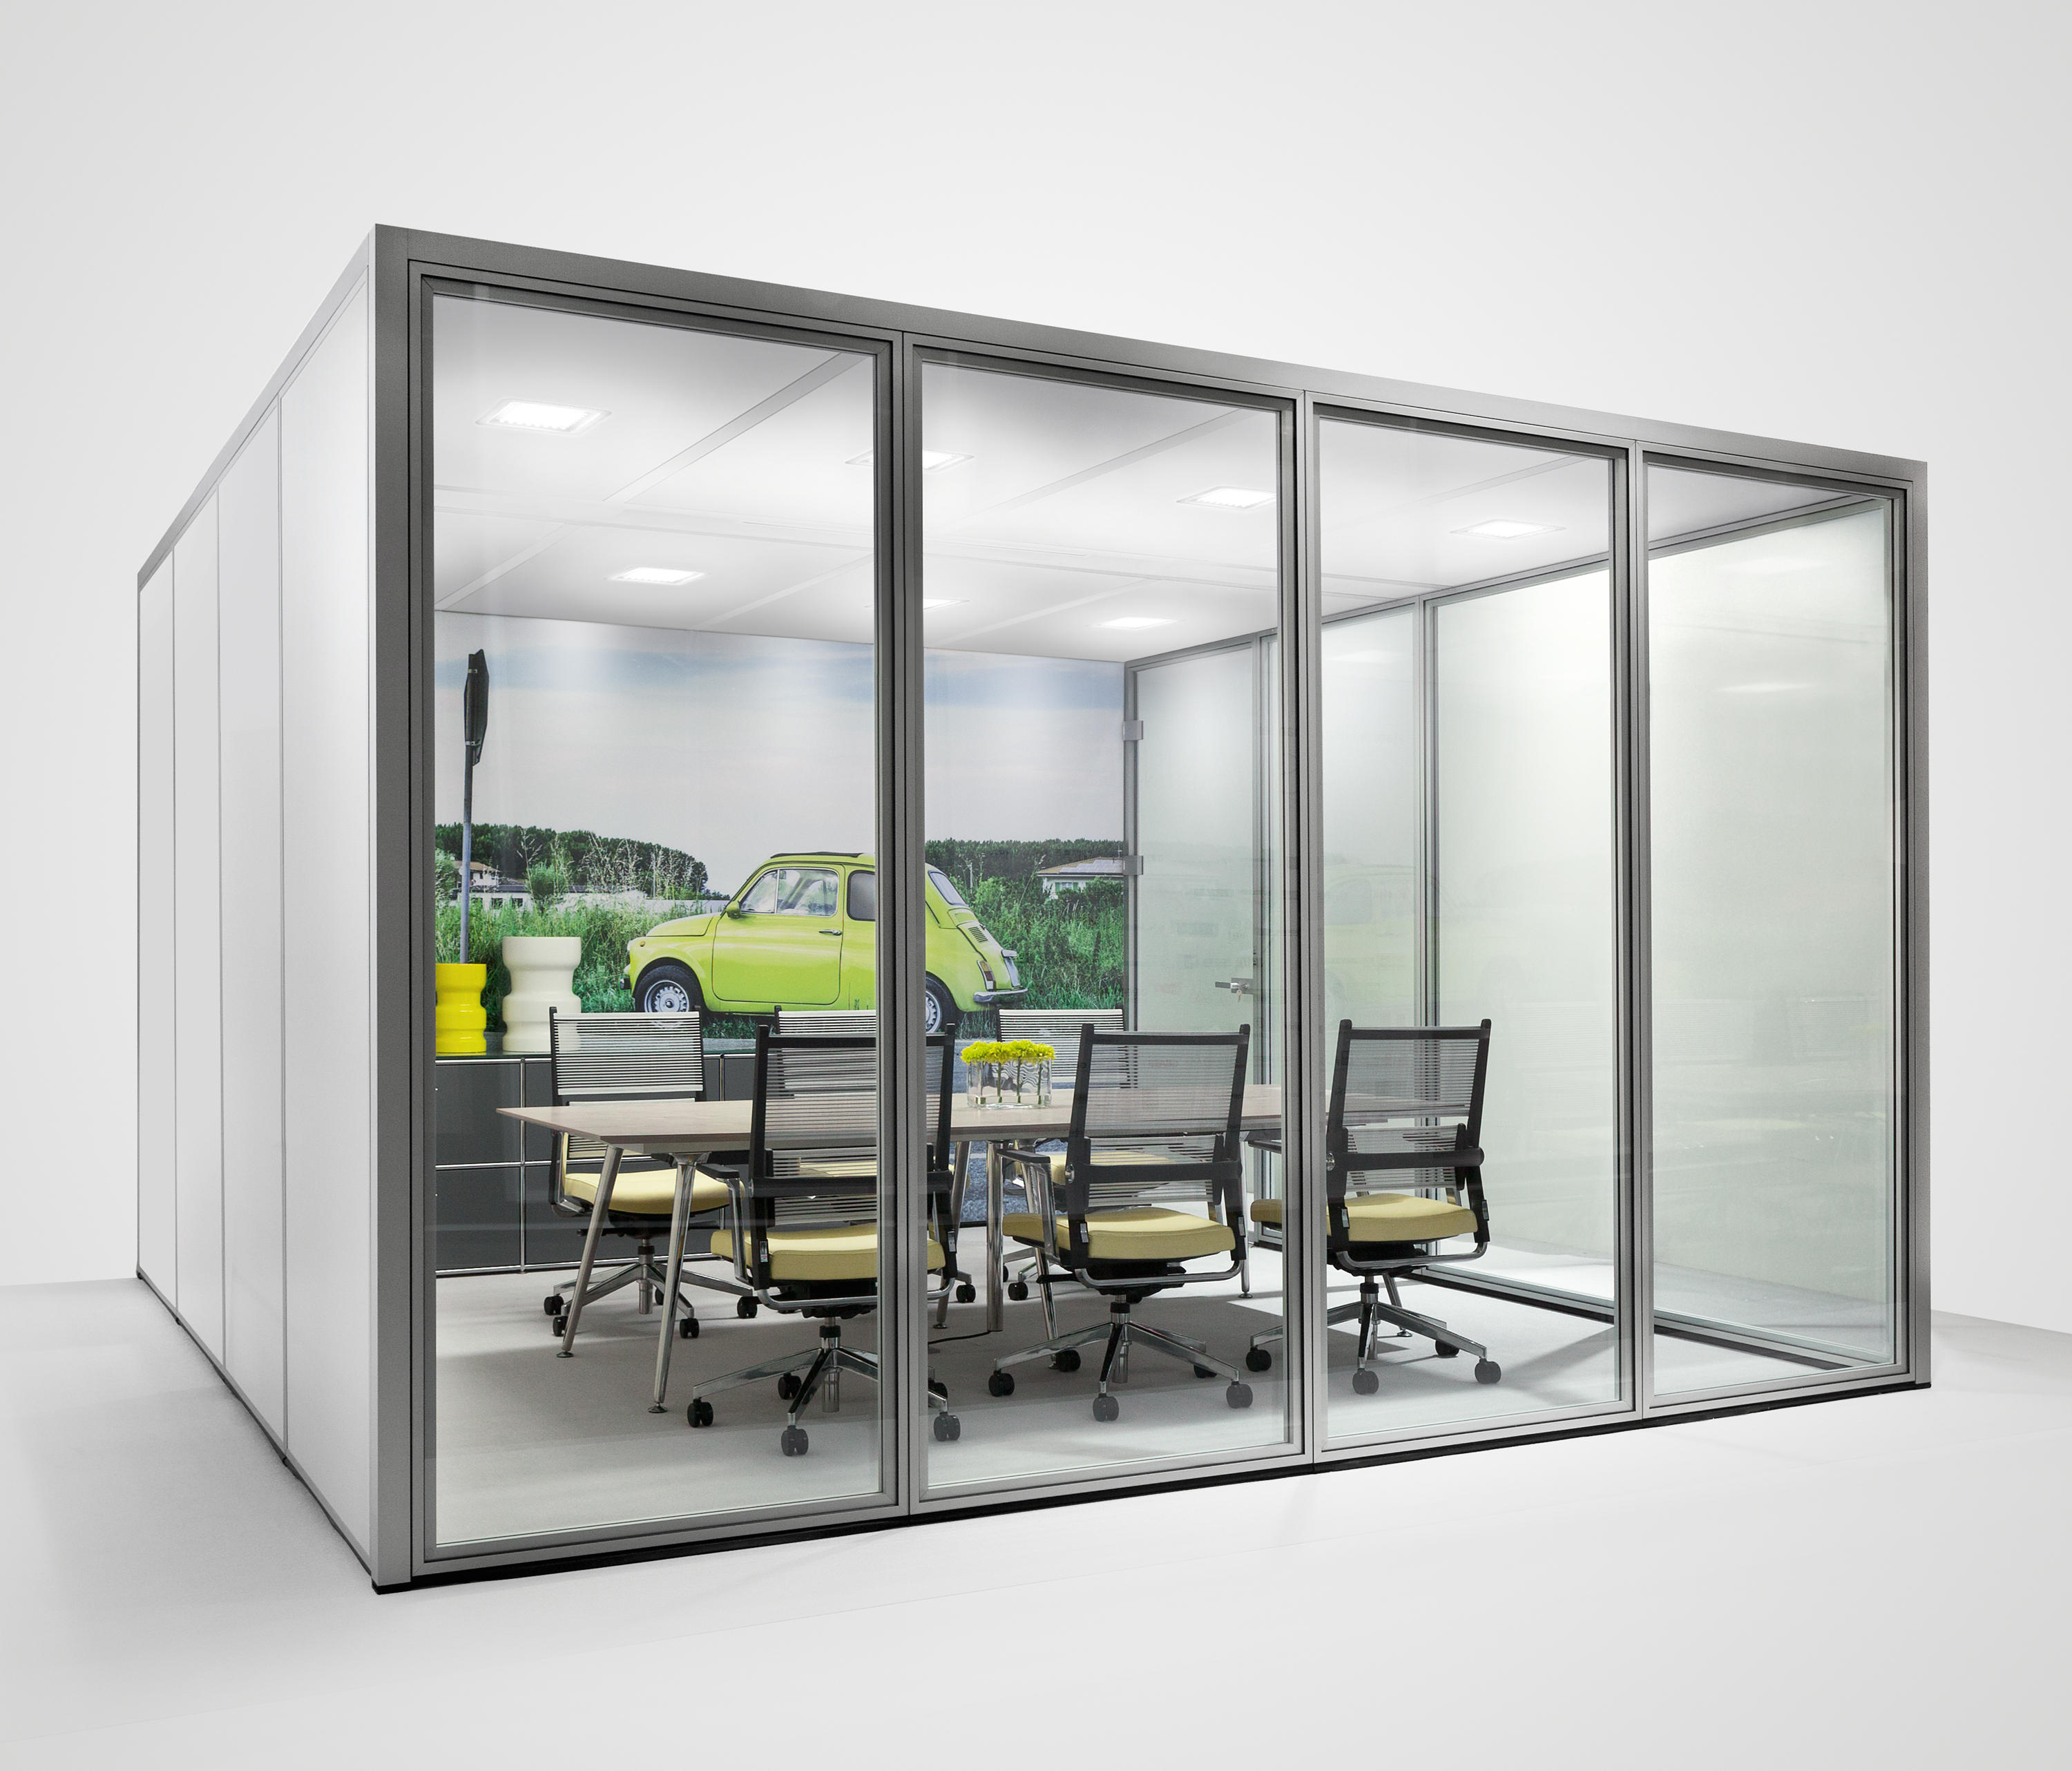 Bosse Design Bosse Human Space Cube Office Systems From Bosse Design